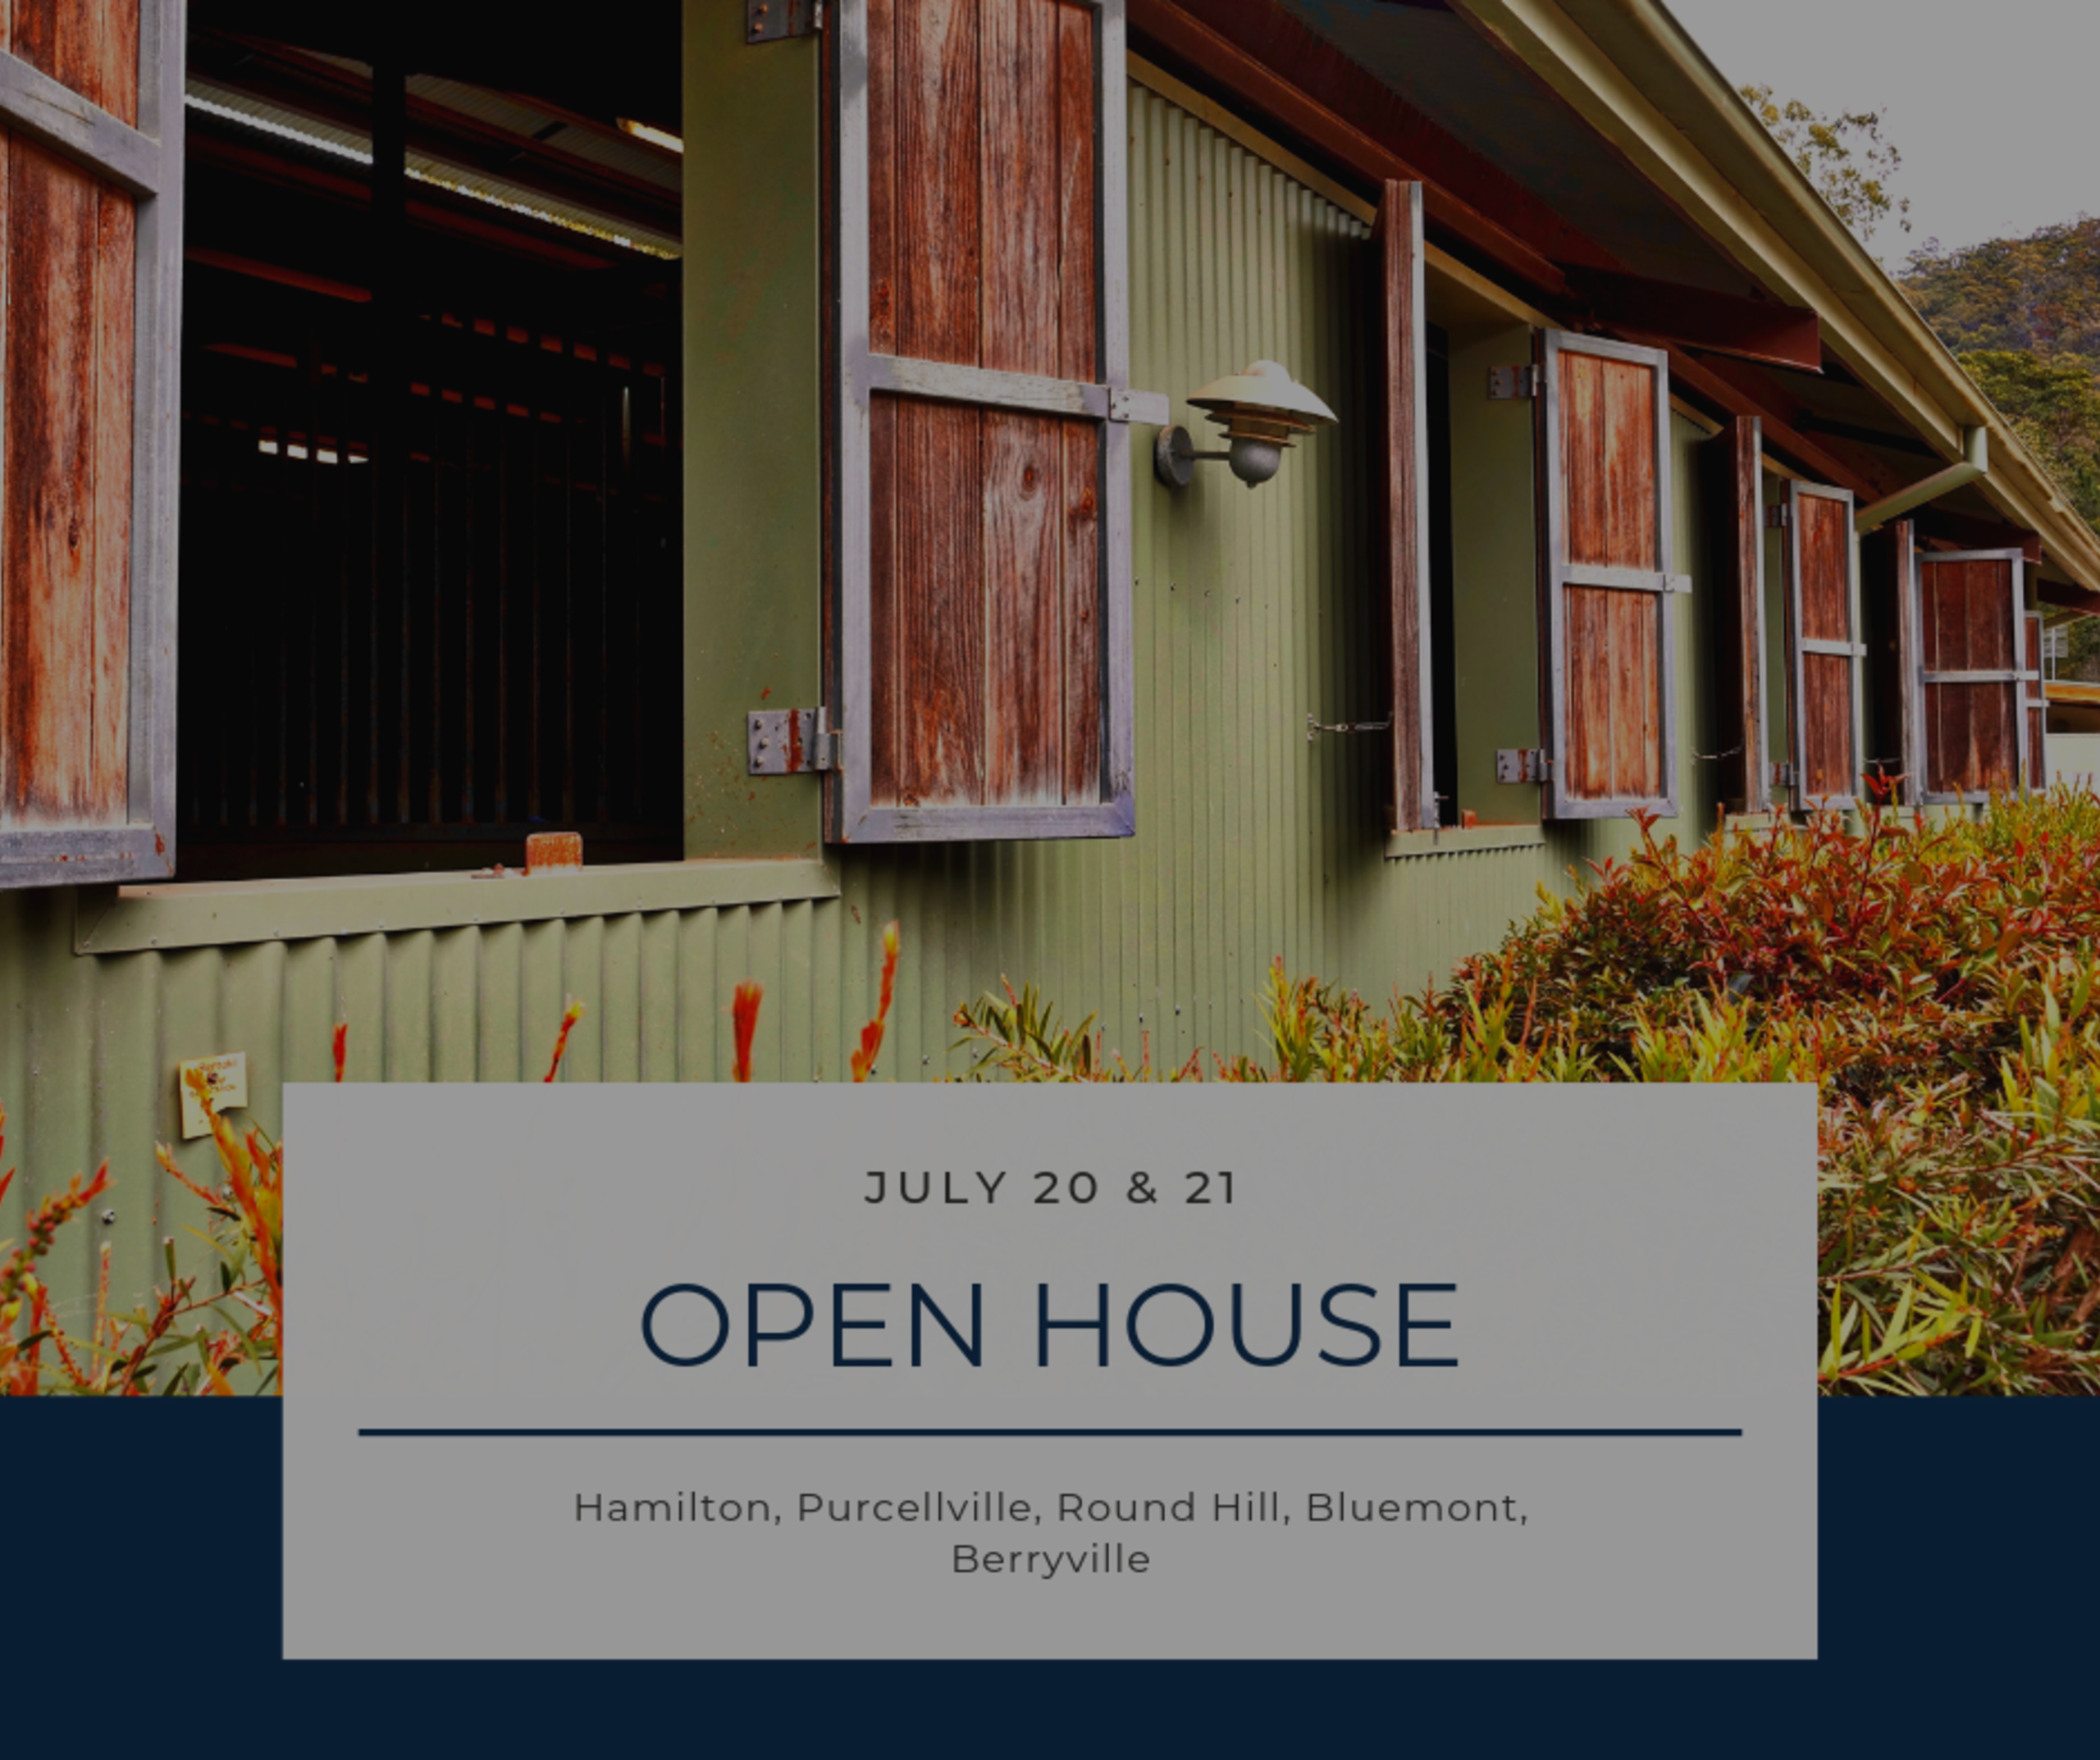 Open House List 7/20/19 – 7/21/19